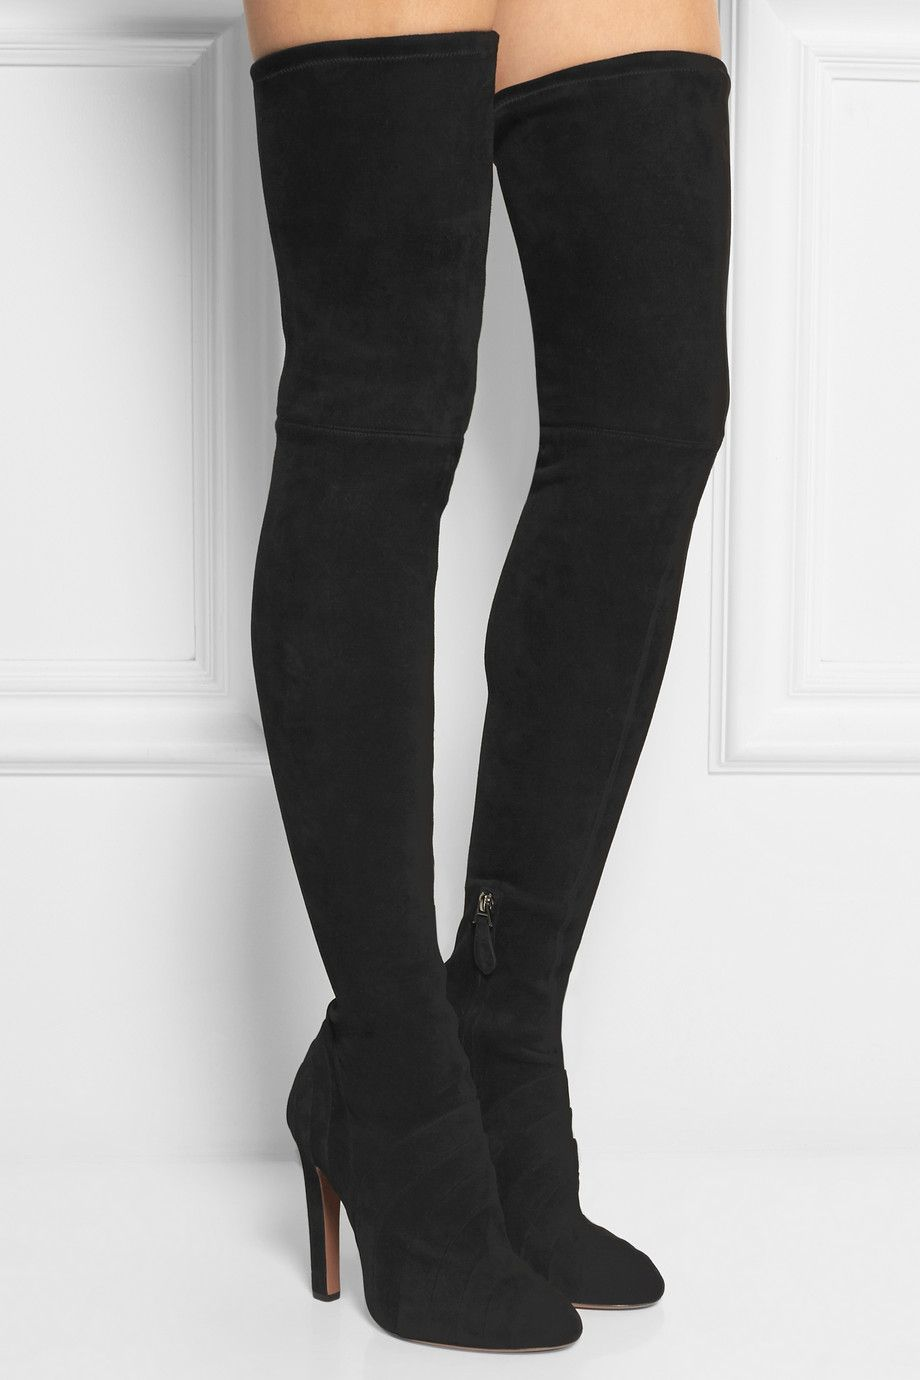 24b15c34457 Alaïa - Stretch-suede over-the-knee boots | Clodhoppers | Boots ...